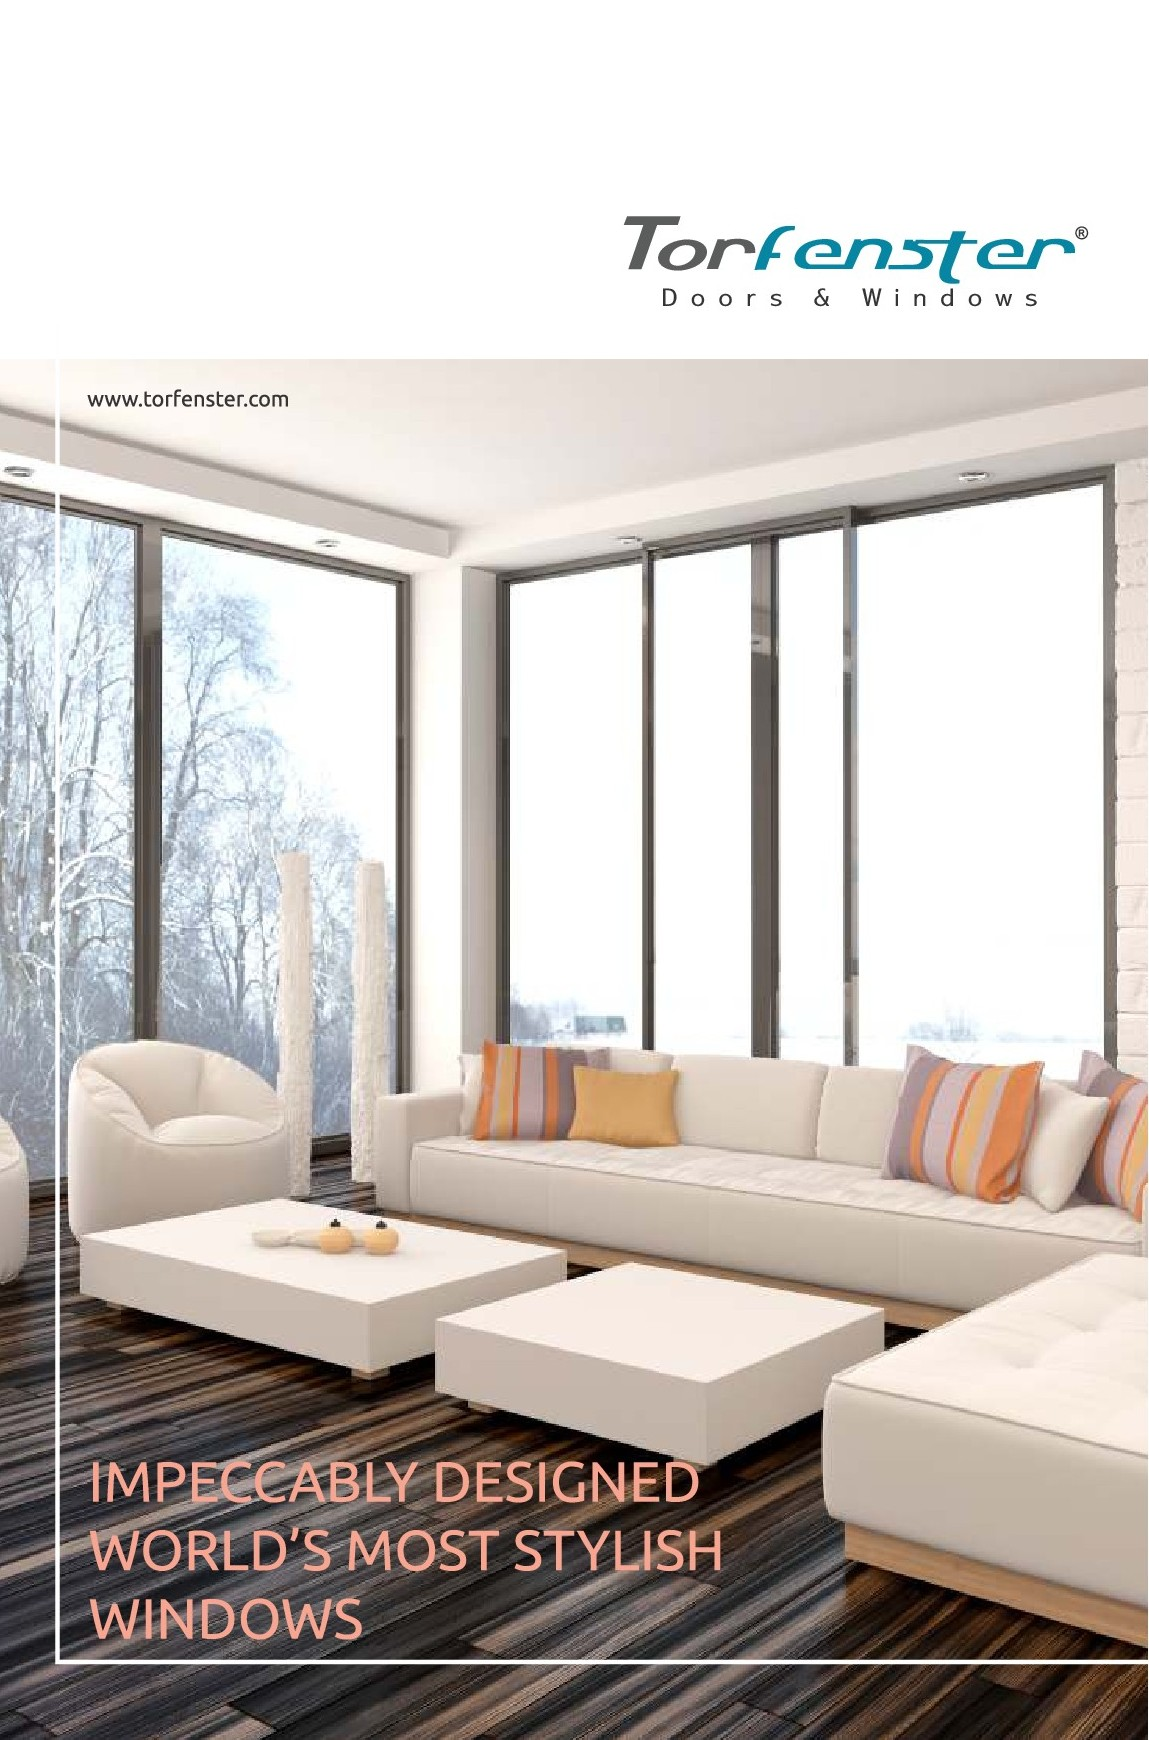 torfenster Products Catalogue